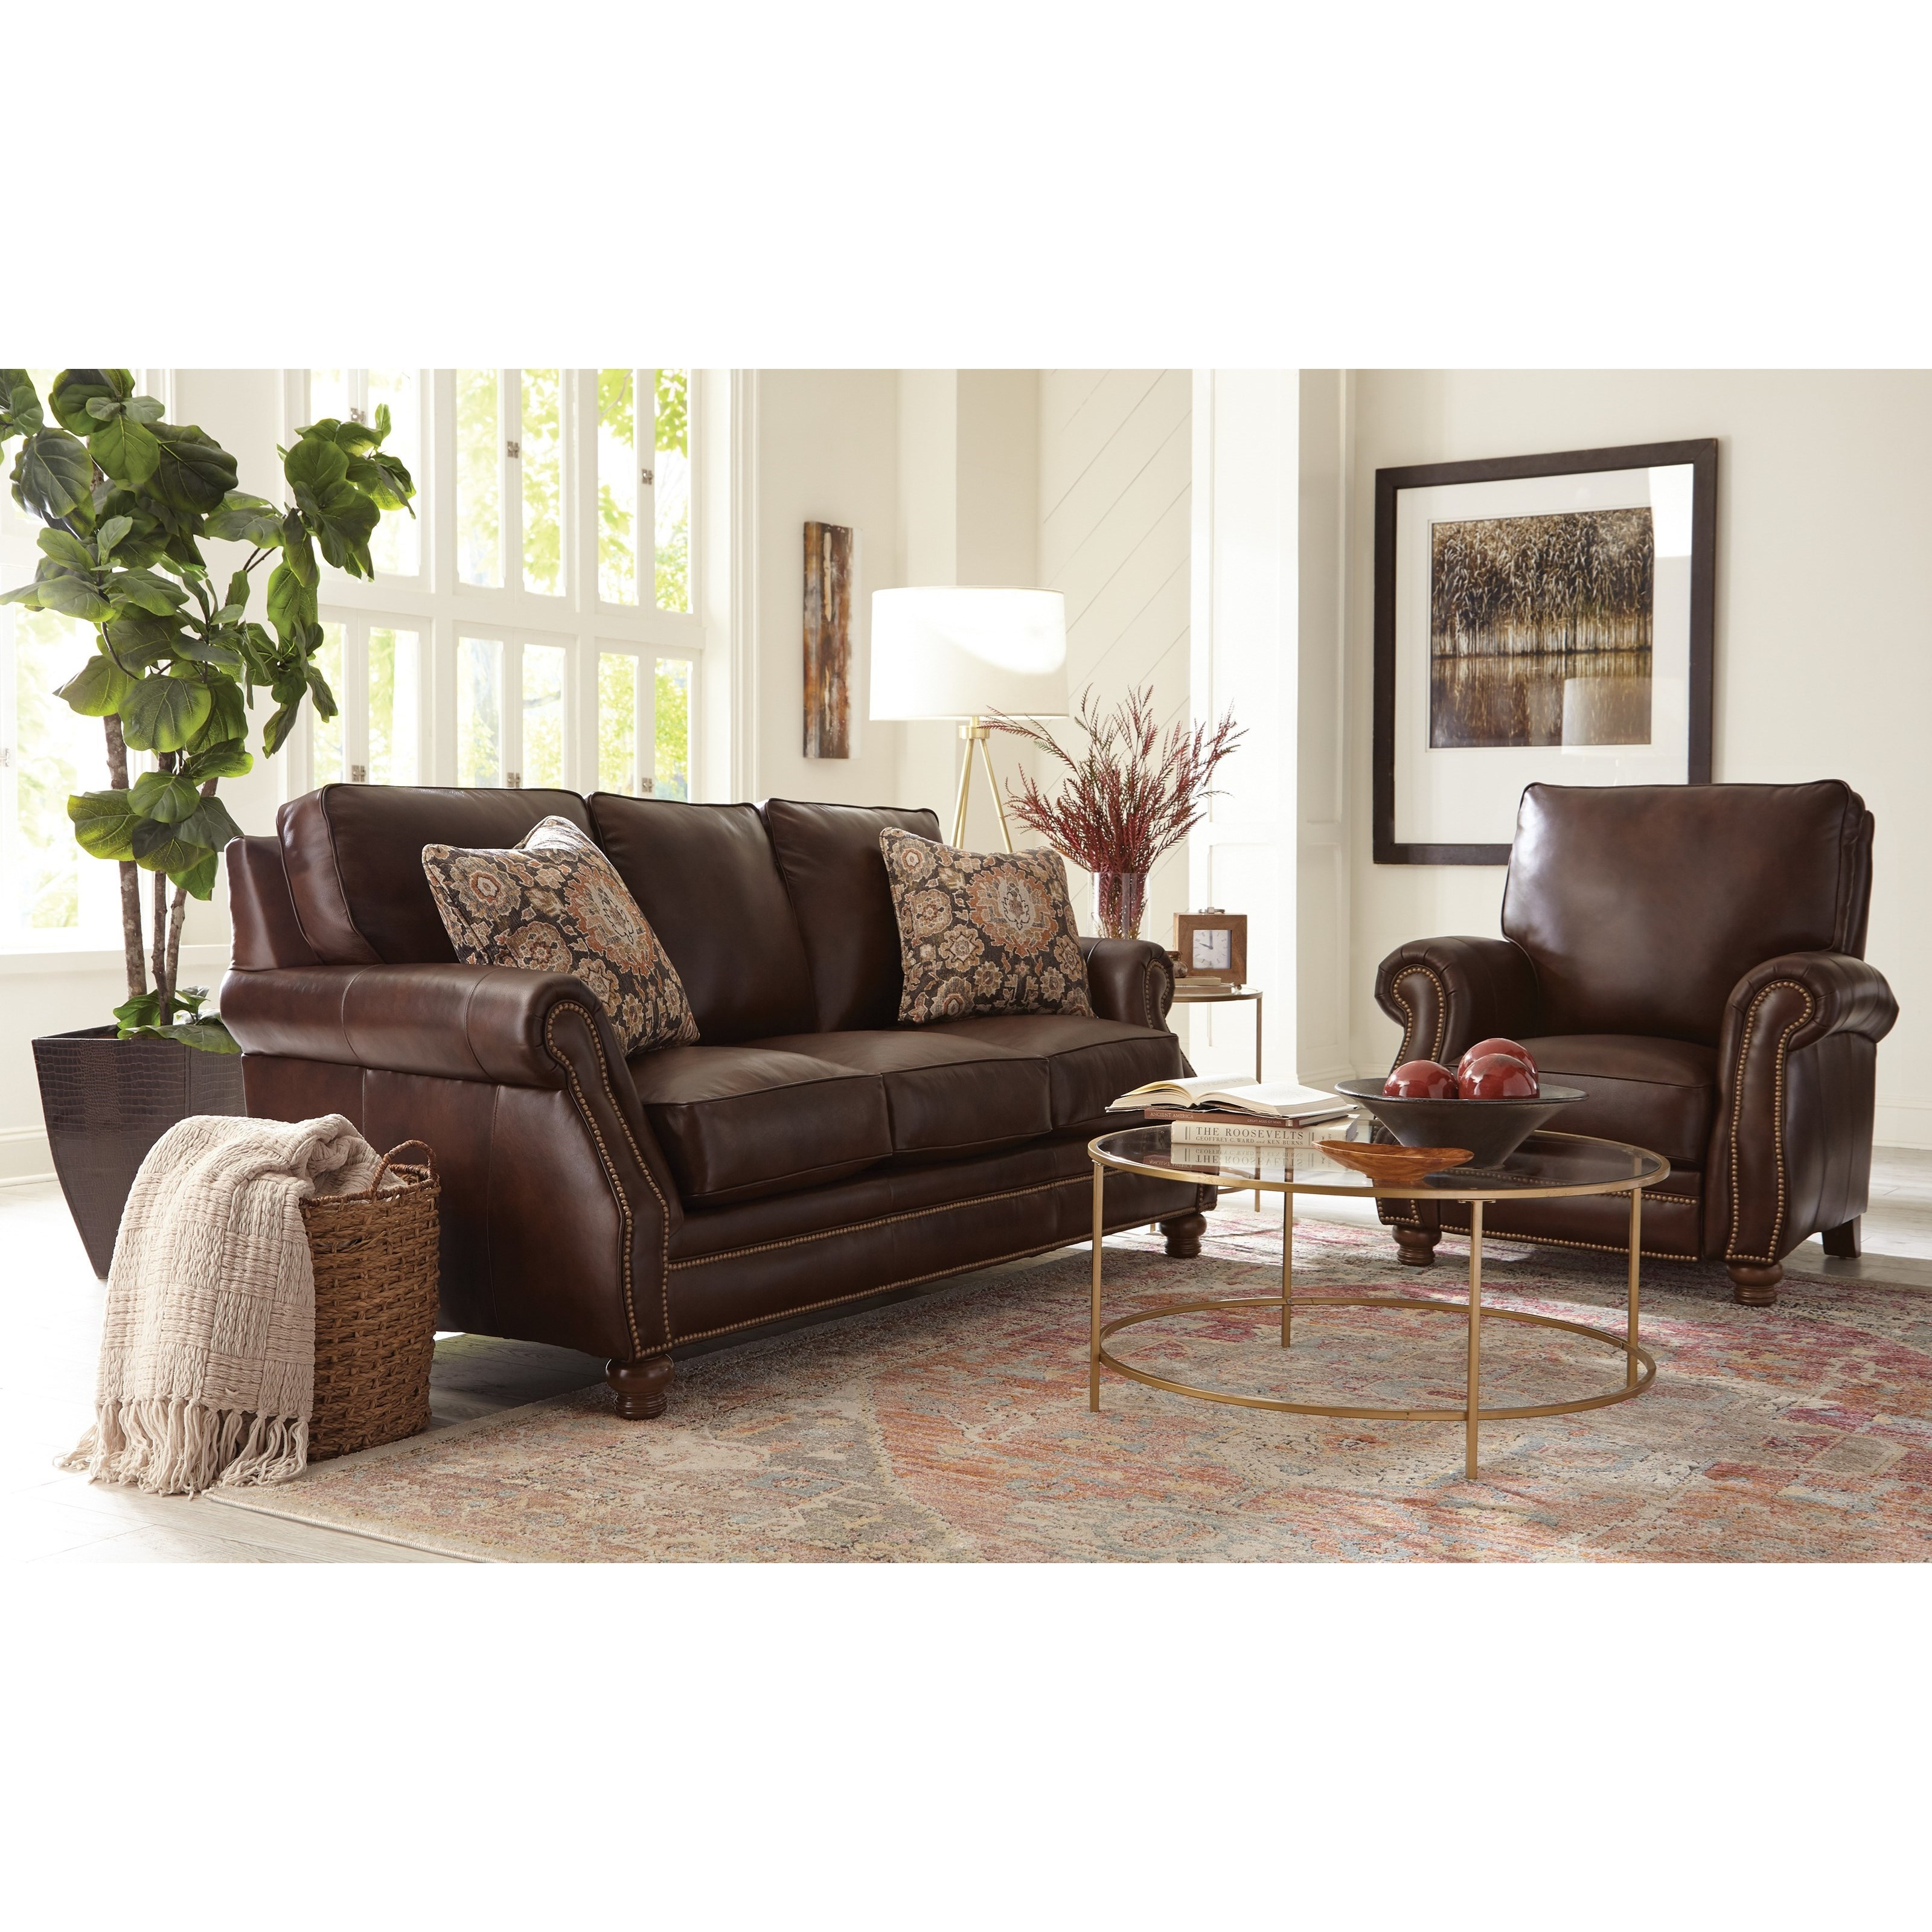 L791050BD Living Room Group by Hickory Craft at Godby Home Furnishings